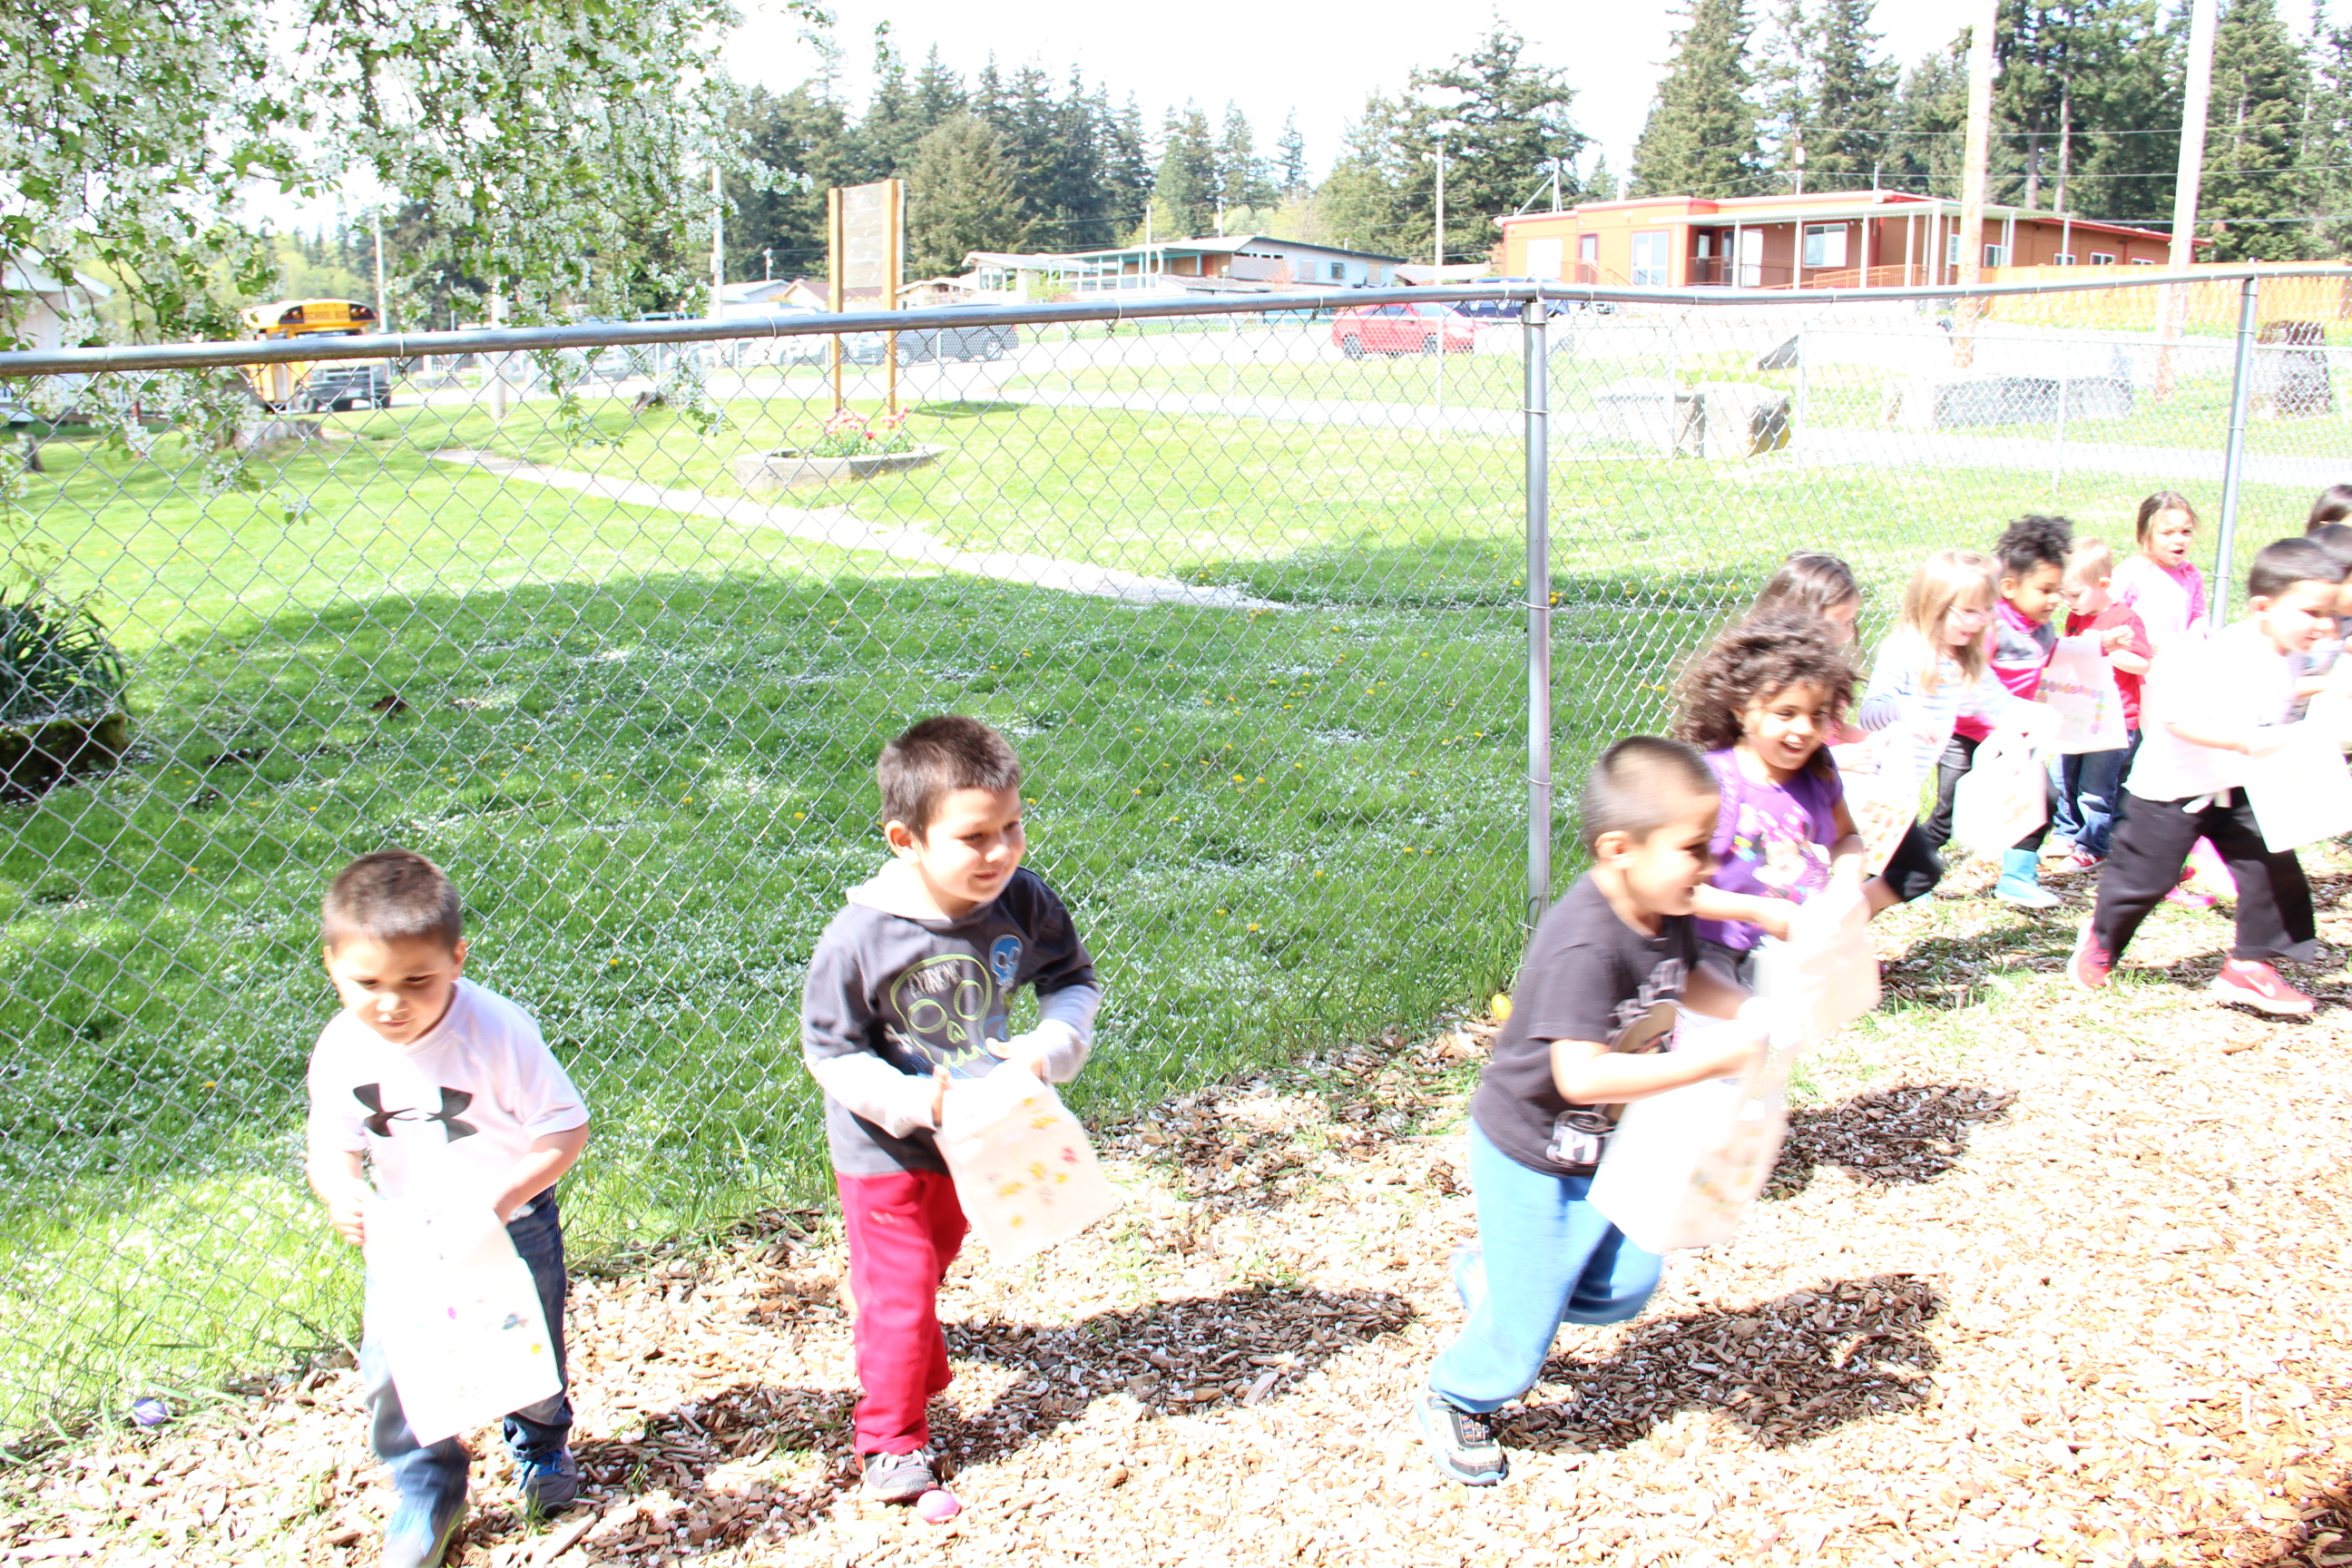 And they're off! Children race to find the most Easter Eggs. Photo: Andrew Gobin/Tulalip News